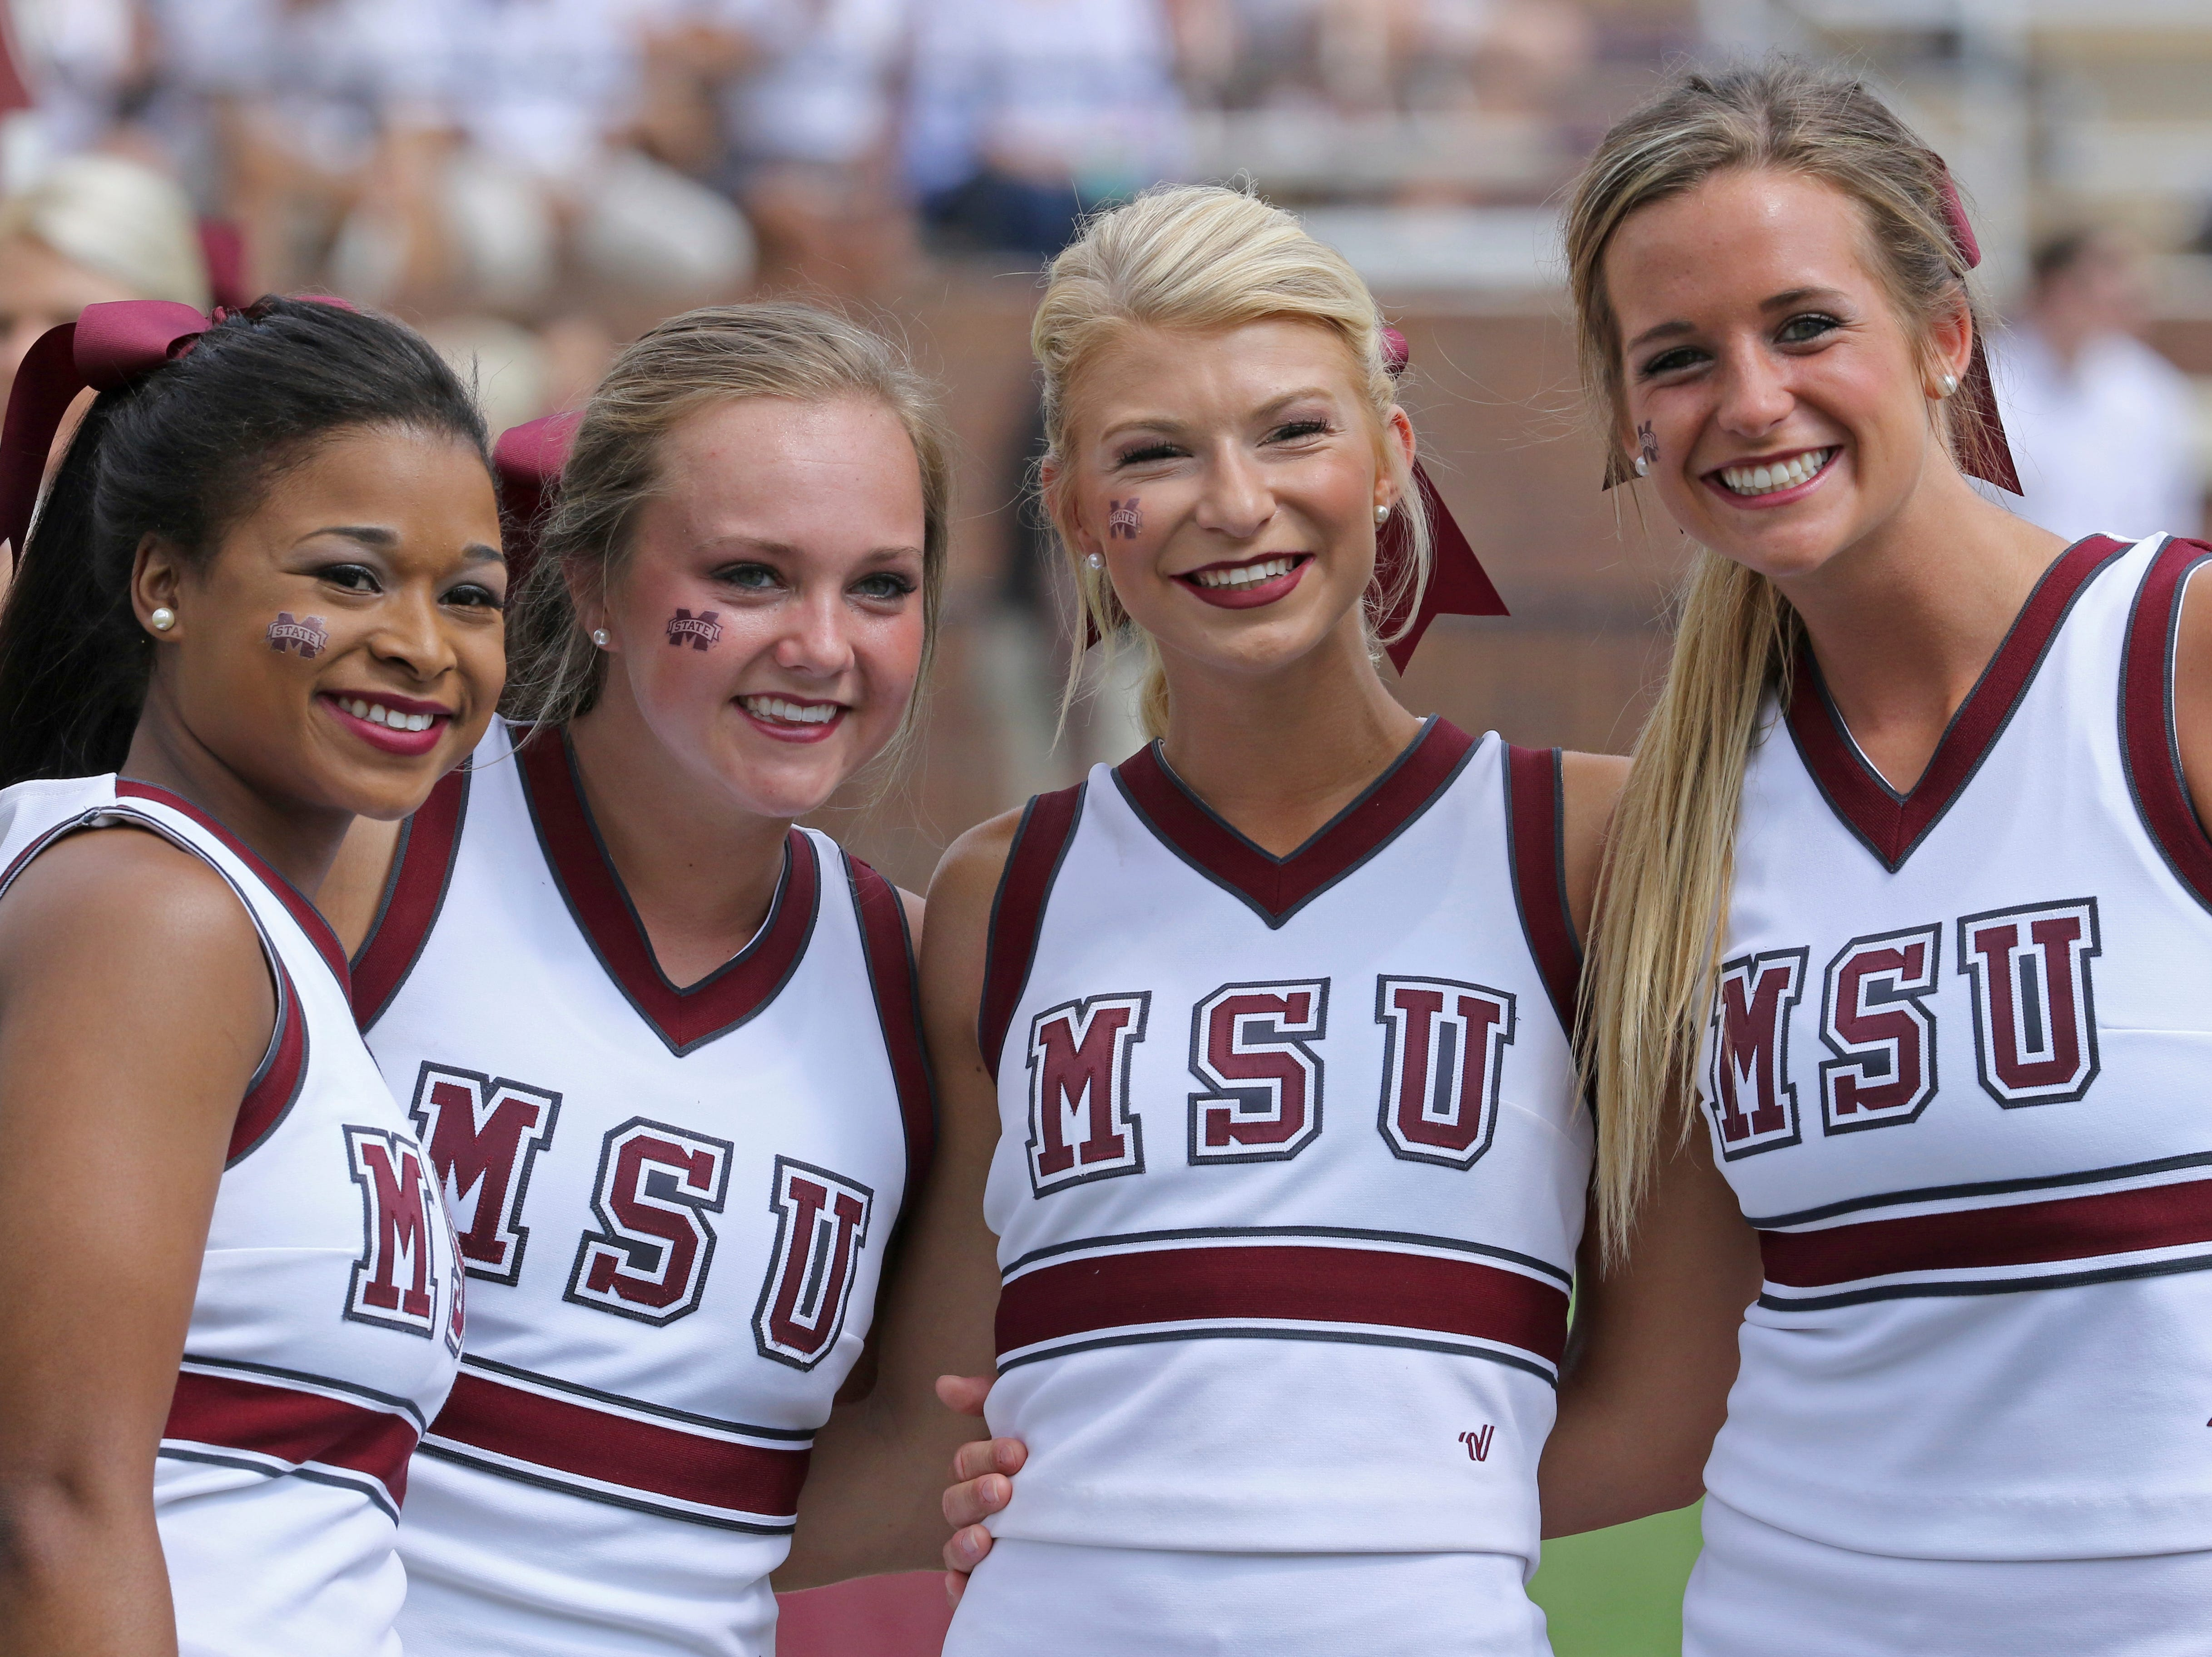 A group of Mississippi State cheerleaders huddle together for a photo during pregame festivities of the NCAA college football game between Mississippi State and Charleston Southern in Starkville, Miss., Saturday, Sept. 2, 2017. (AP Photo/Jim Lytle)